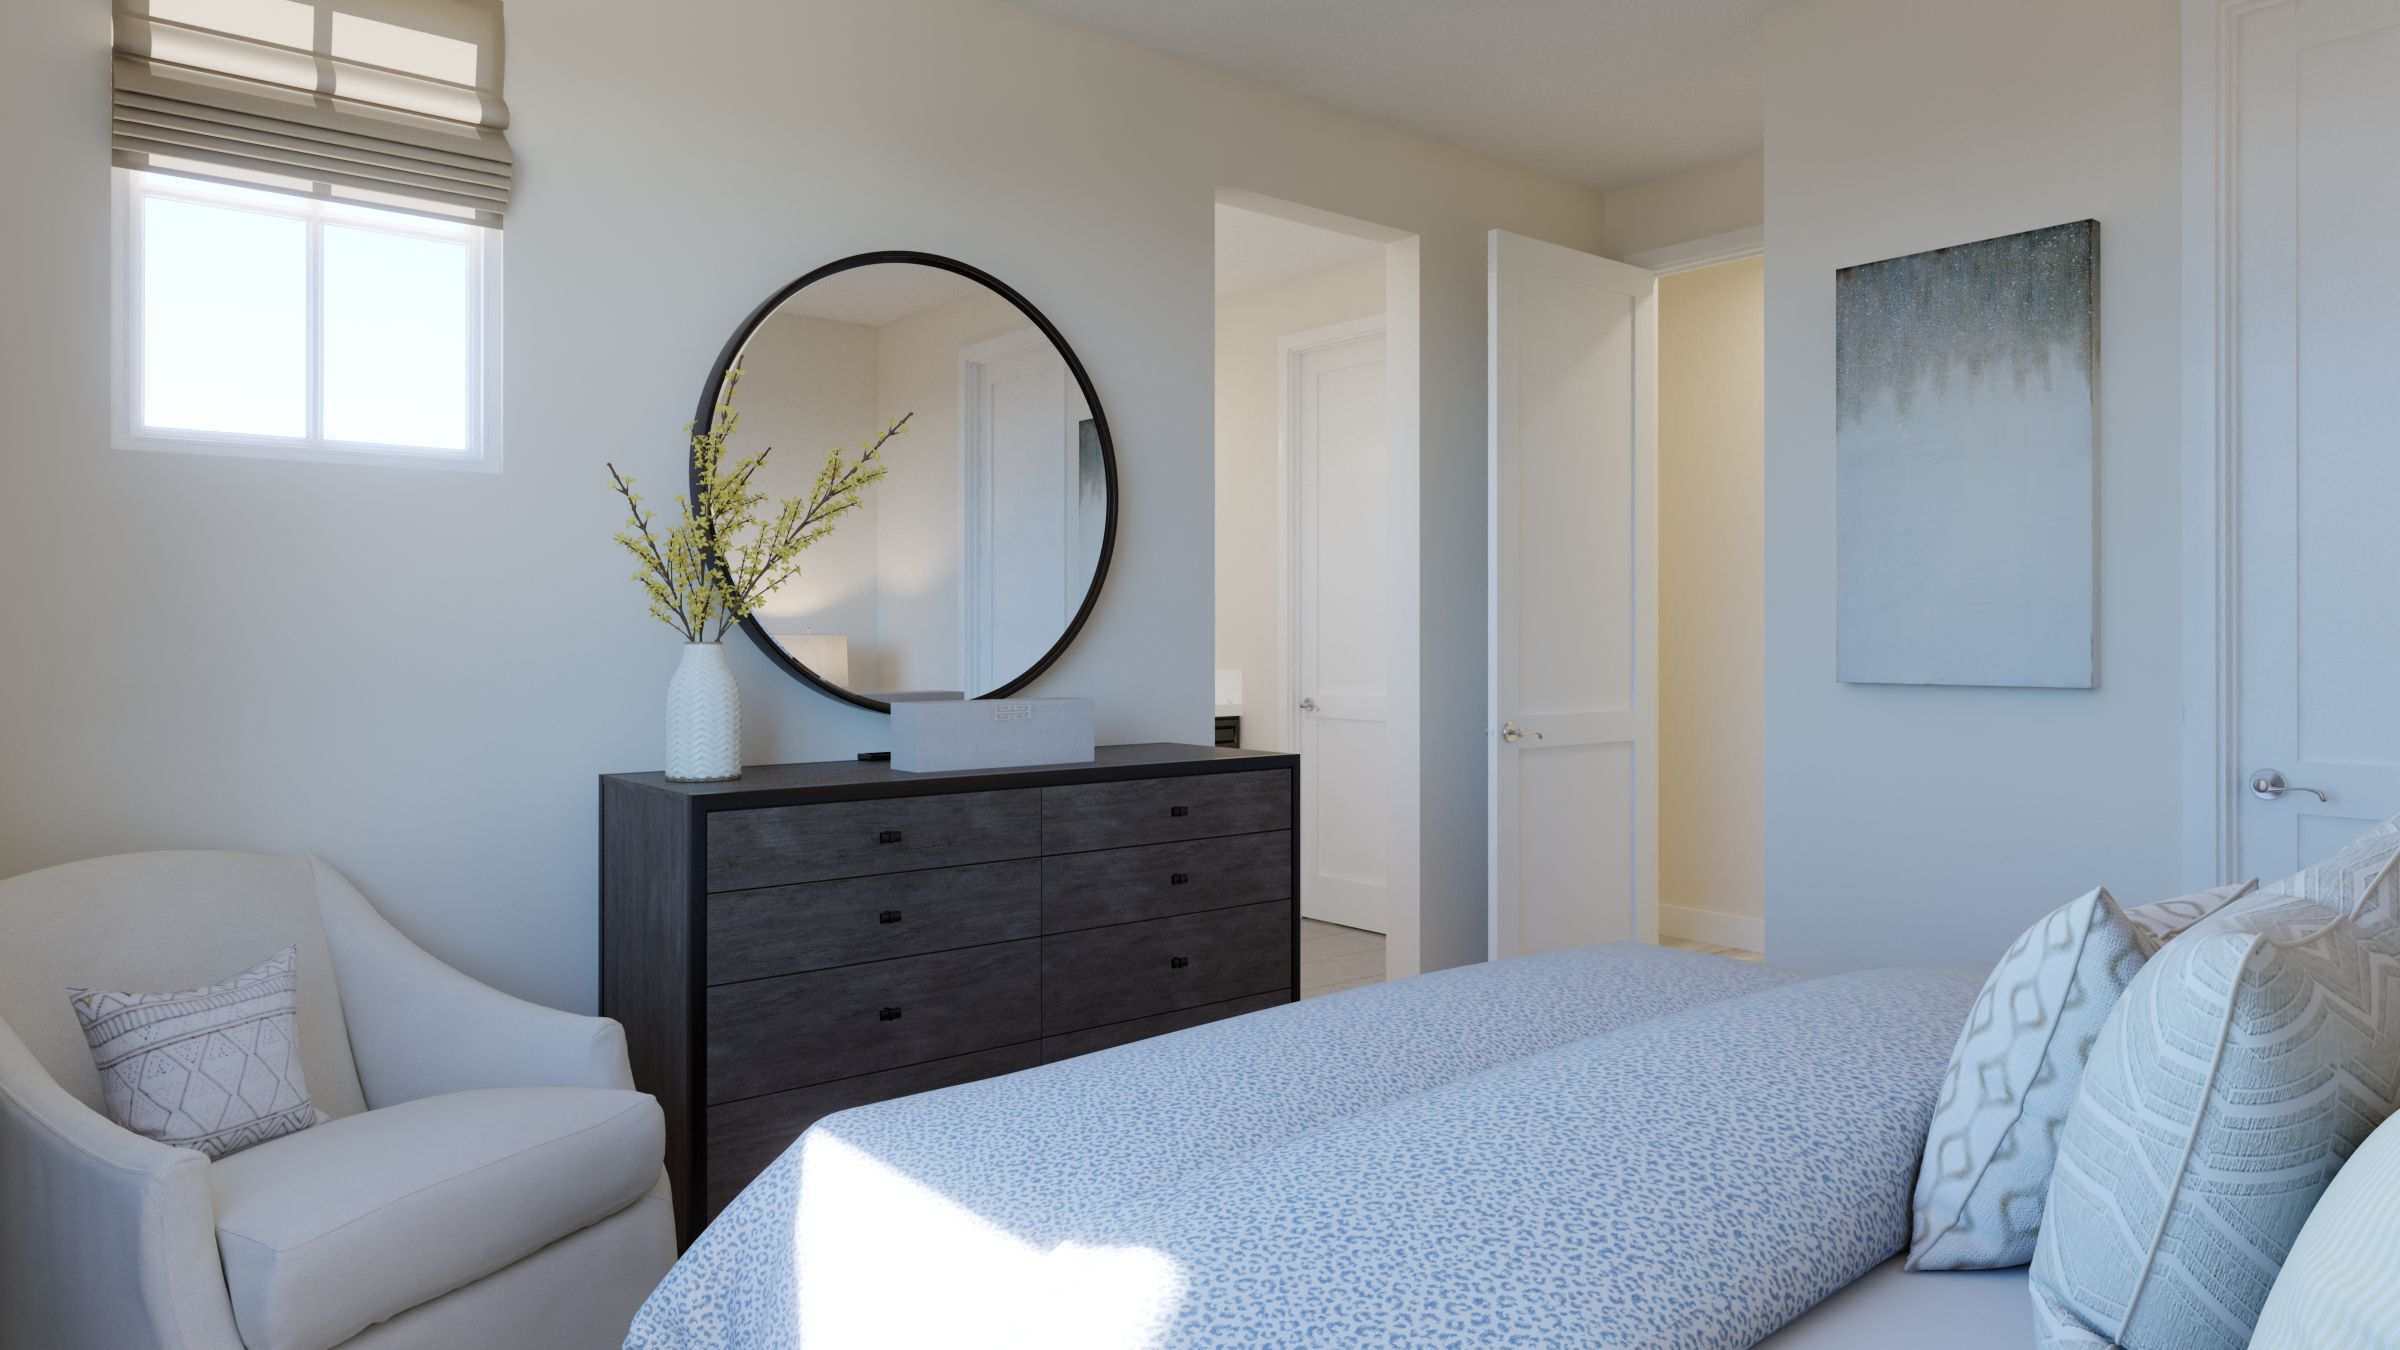 Bedroom featured in the Residence 1 Pear Tree By Taylor Morrison in Vallejo-Napa, CA